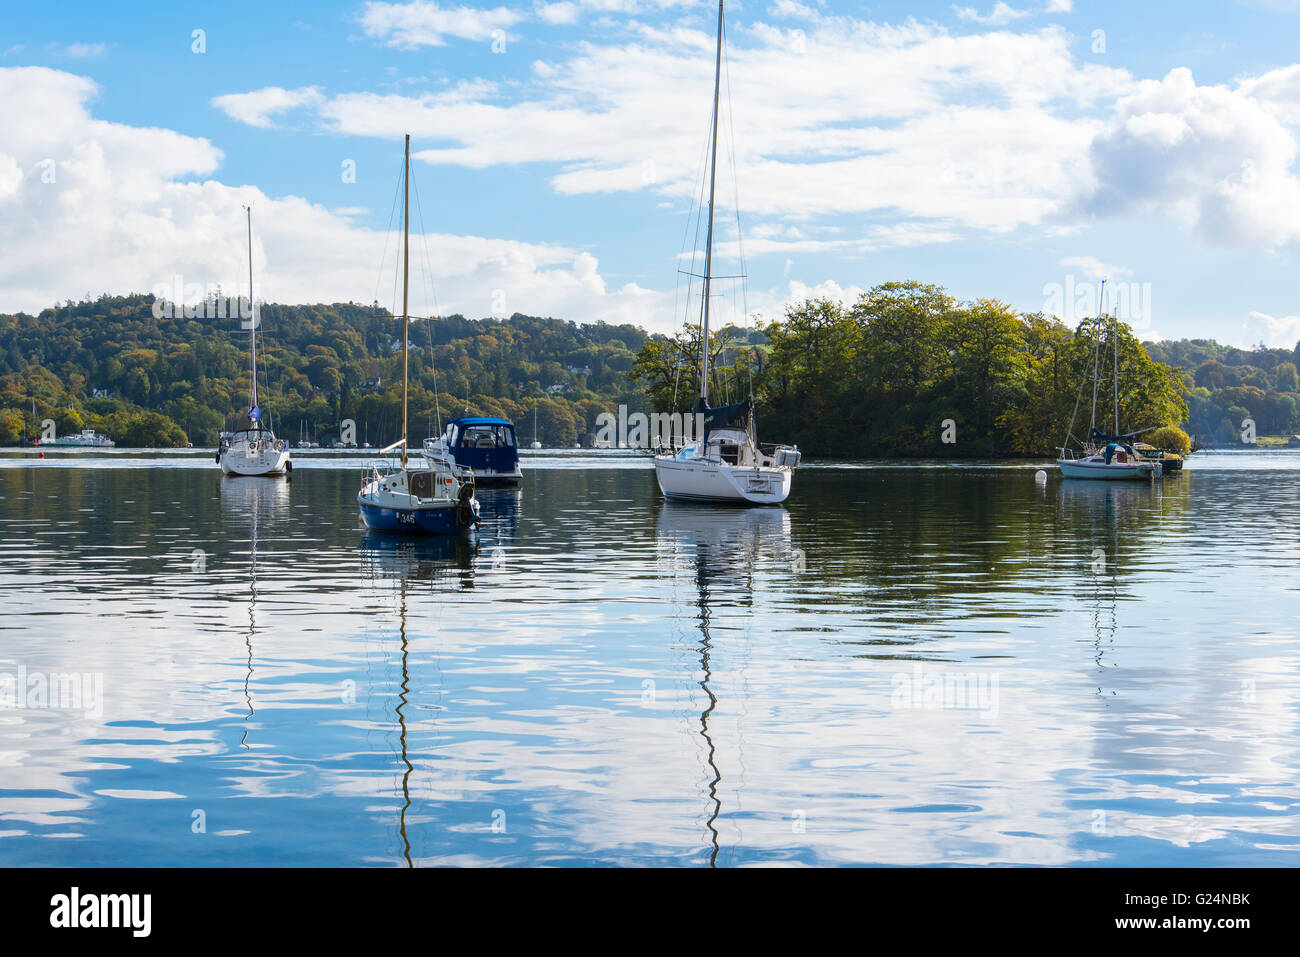 Moored yachts on Windermere in the Lake District Cumbria. The island is Crow Holme. - Stock Image